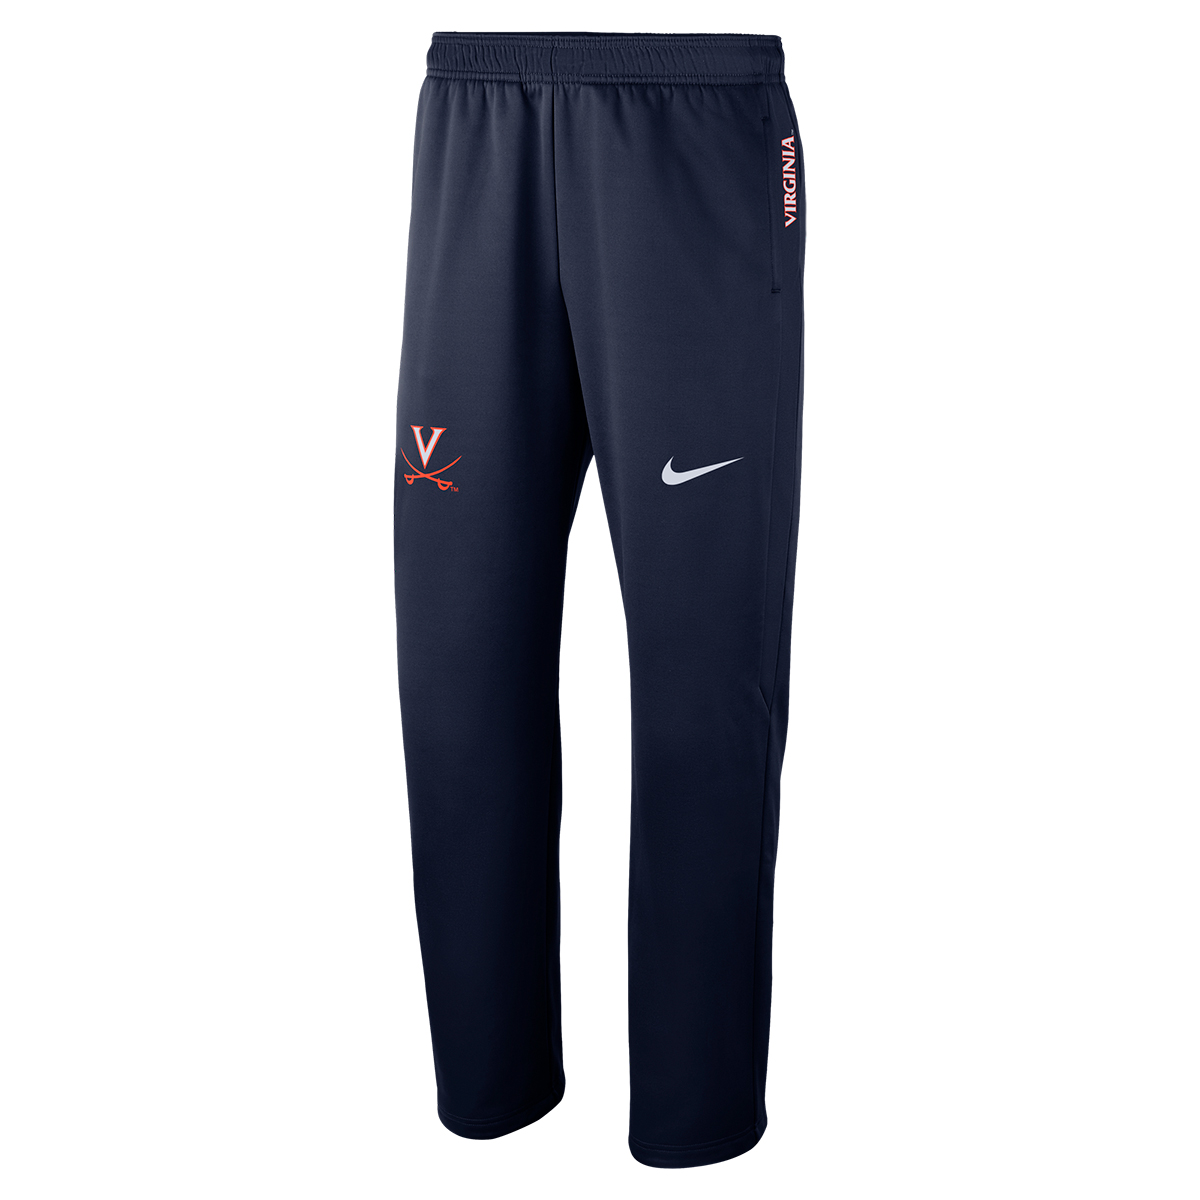 University of Virginia Nike Therma-Fit Sweat Pants